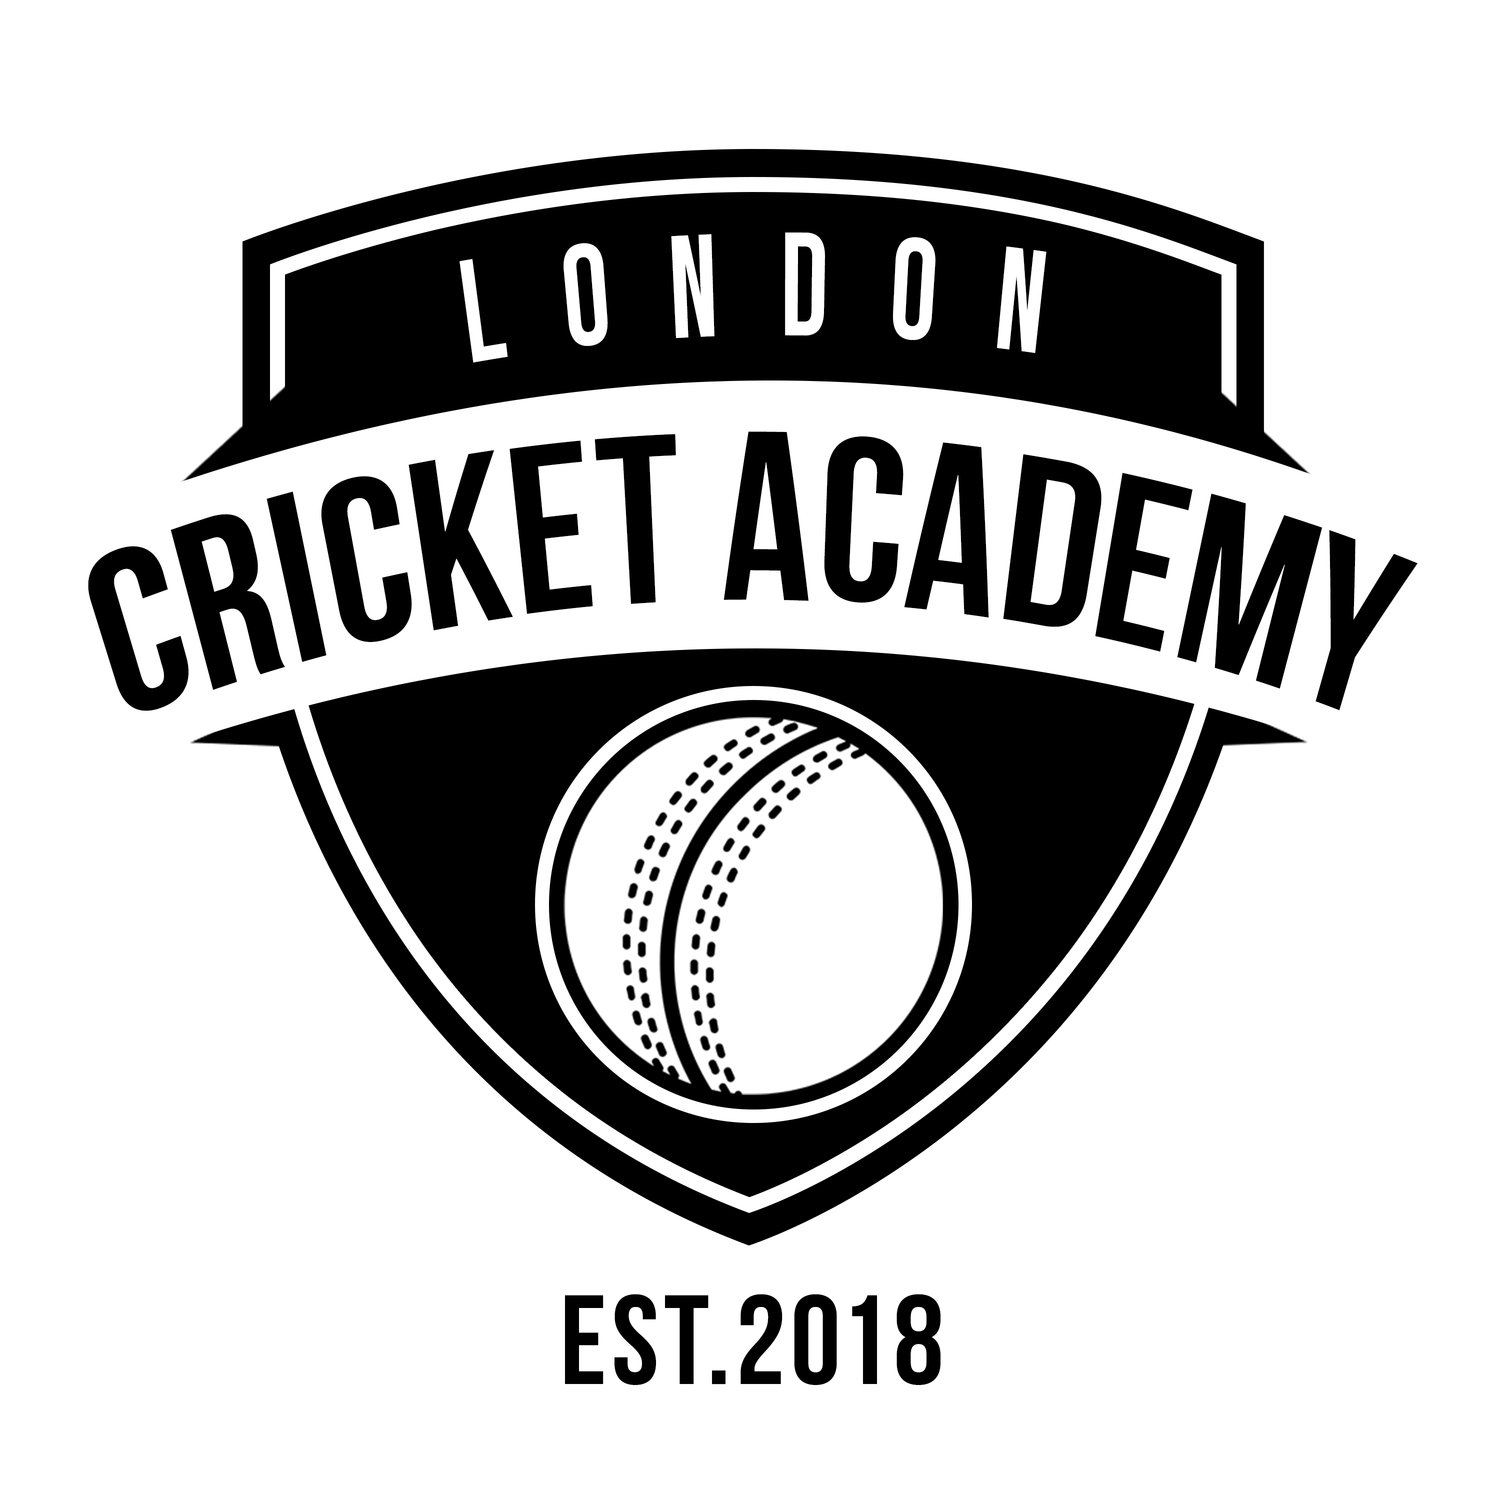 london cricket academy